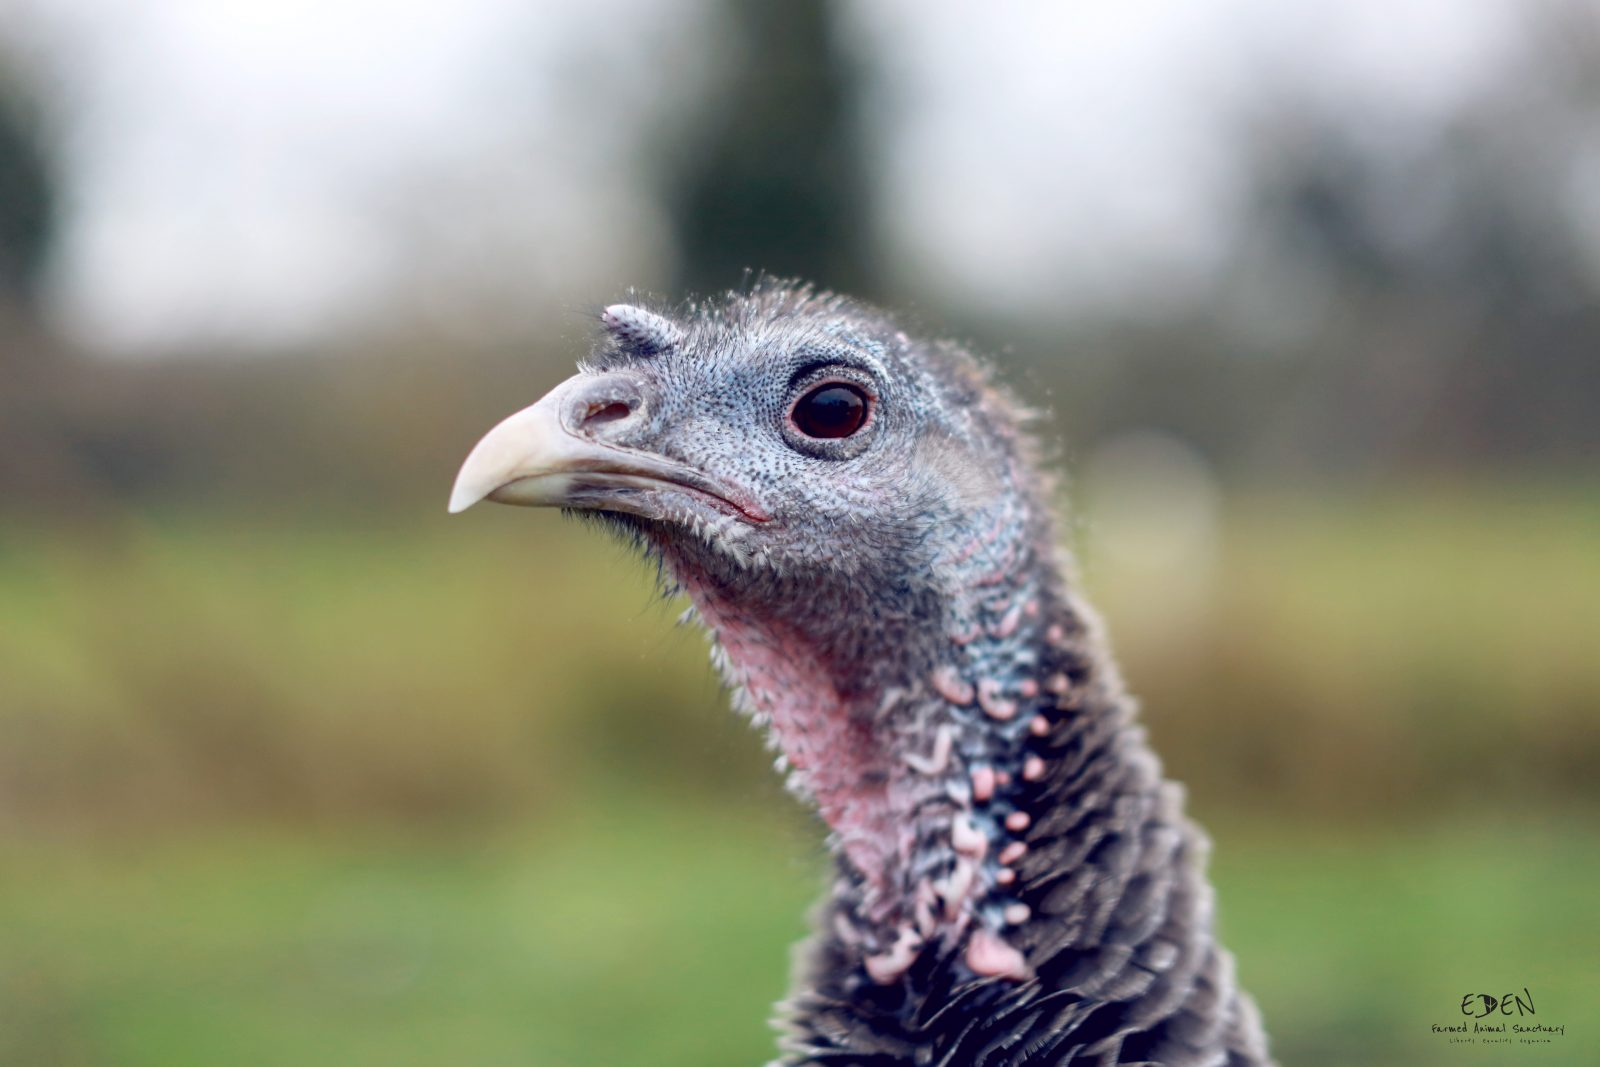 turkey at eden farmed animal sanctuary ireland